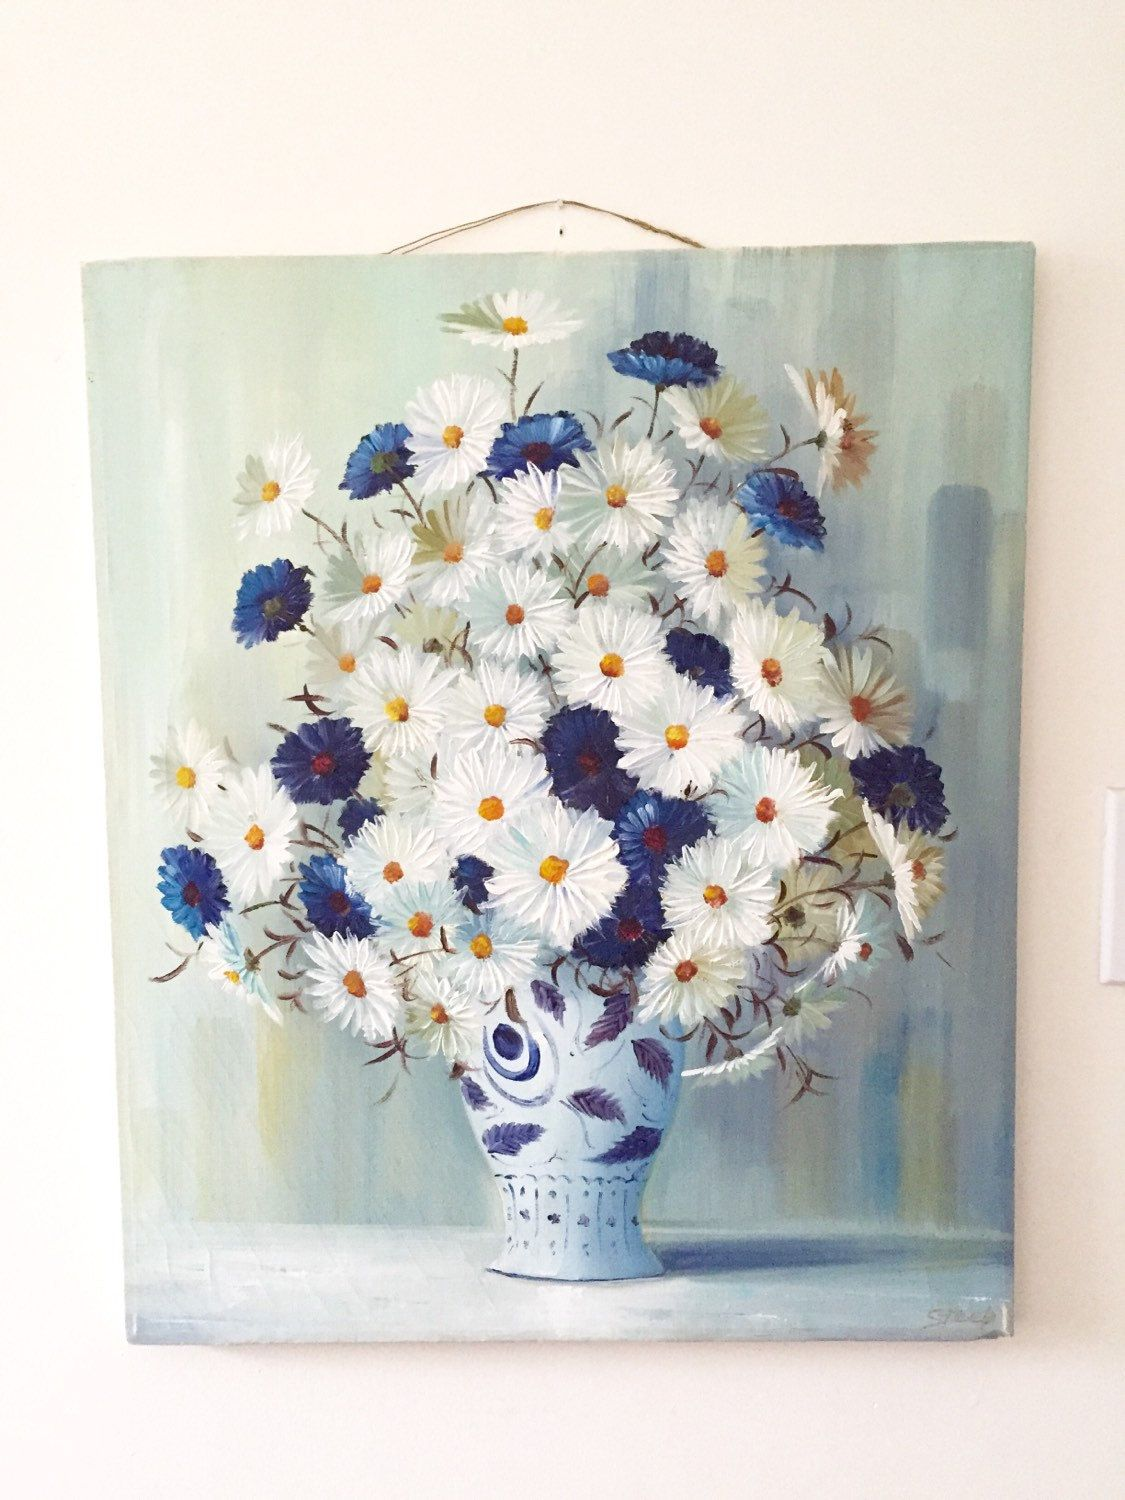 Original Floral Painting Vintage Canvas Old Oil Painting Signed Art Work blue and white vase Daisies cottage chic by StudioVintage on Etsy